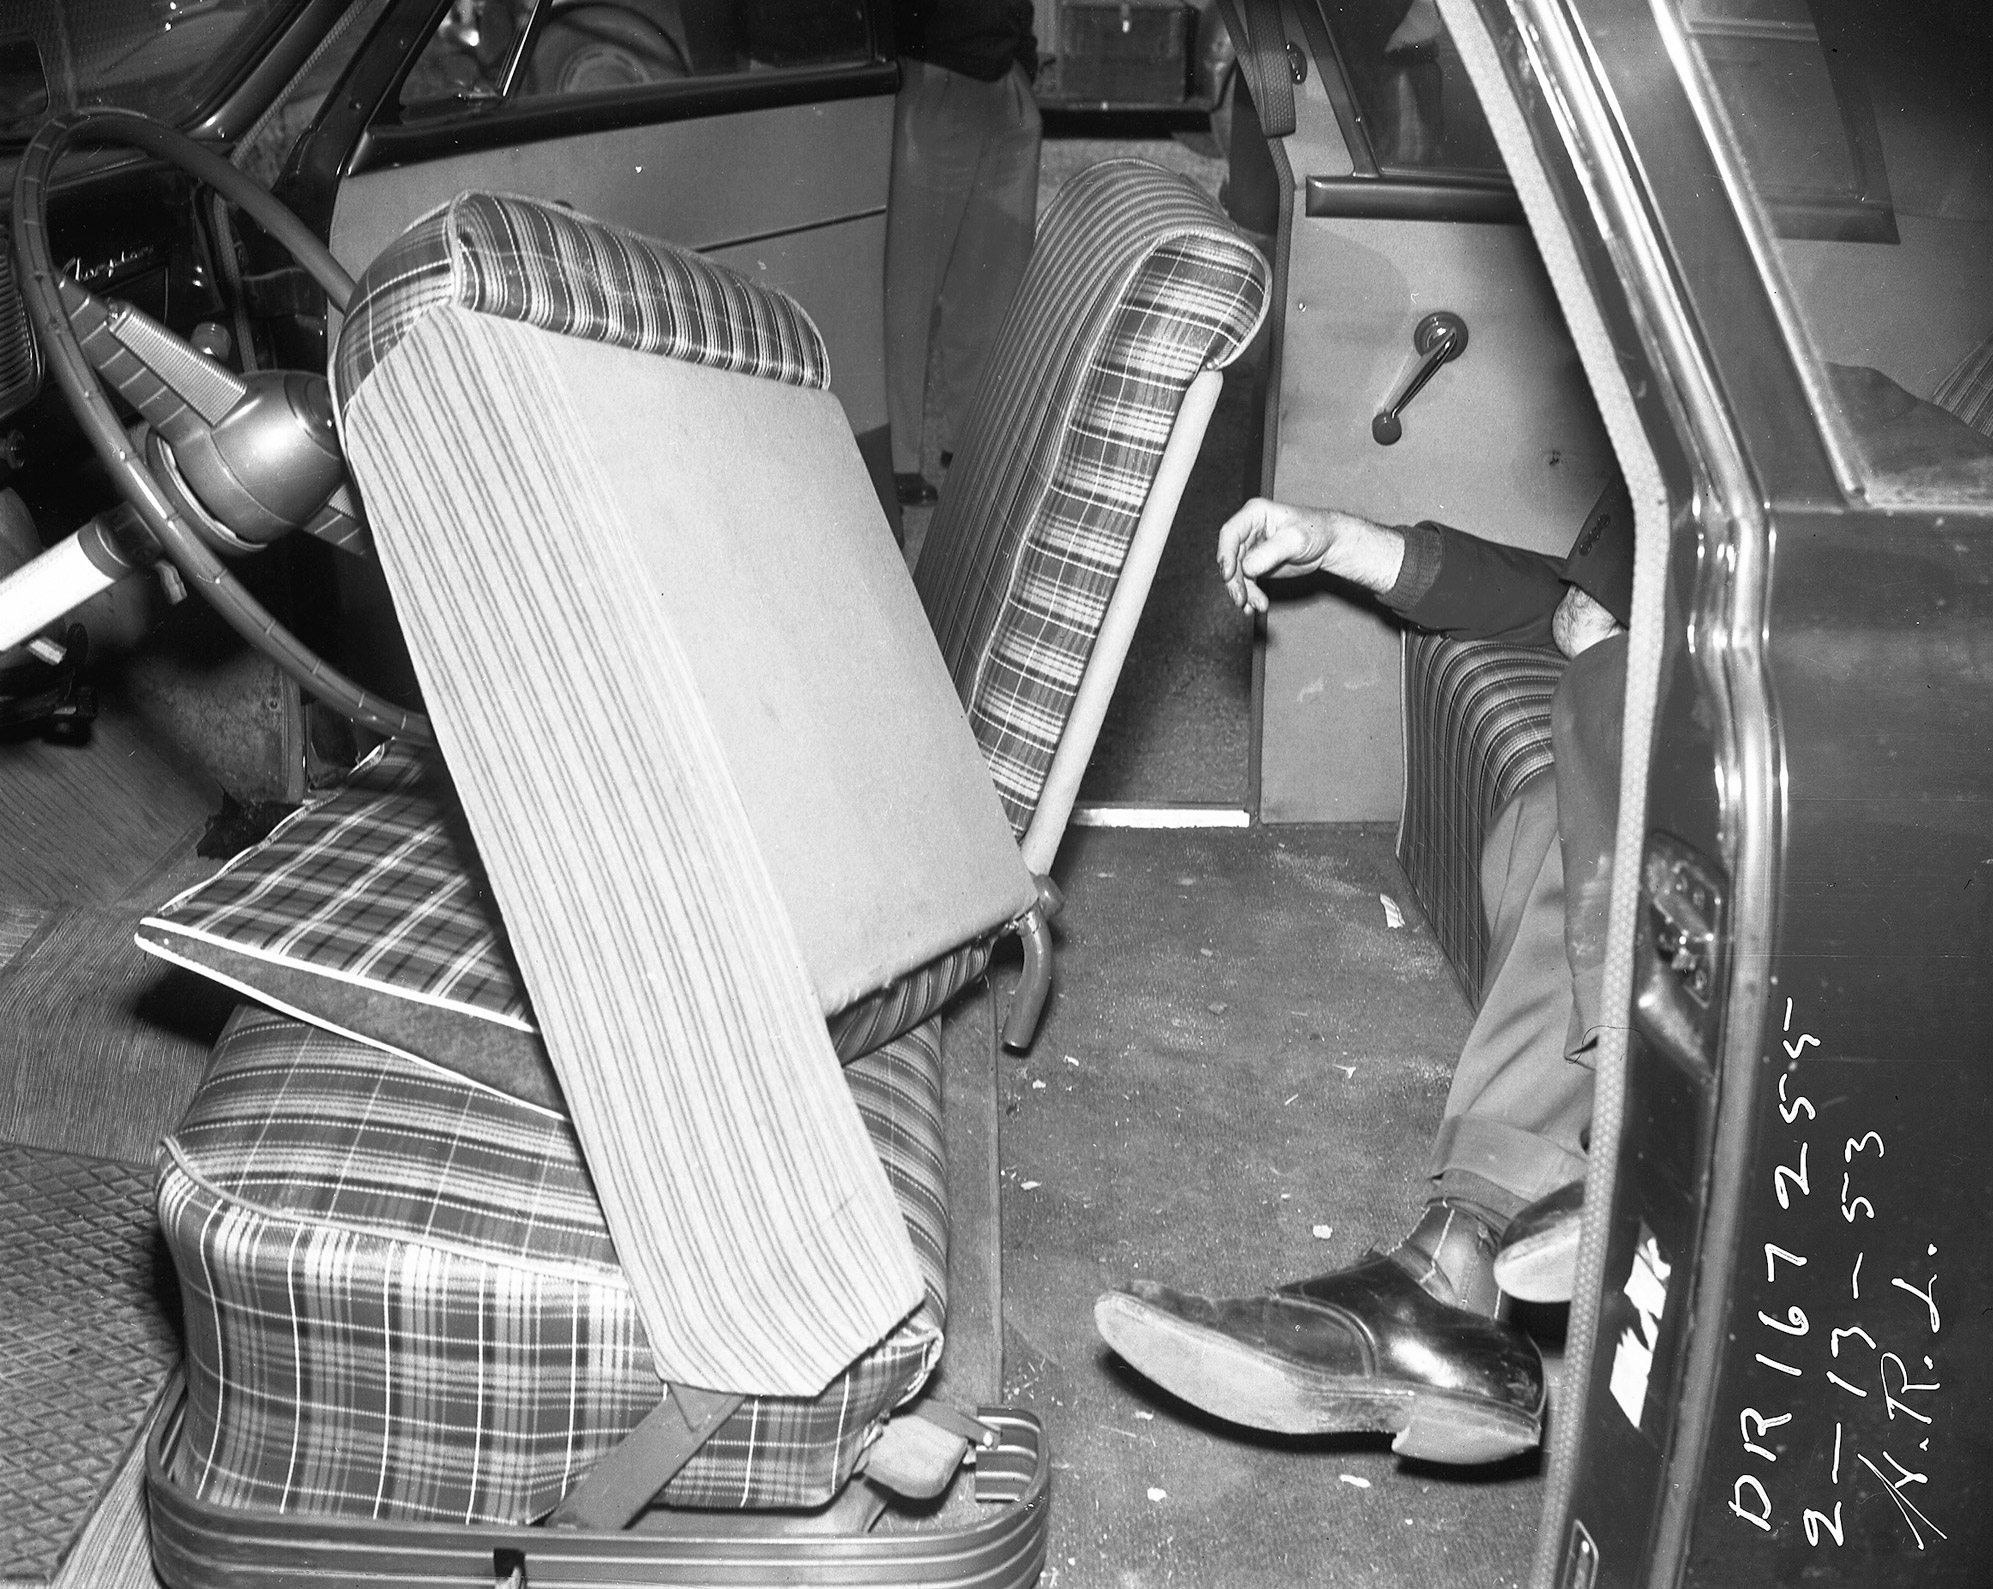 Sad silent suicide by carbon monoxide poisoning in Hollywood on February 13, 1953.